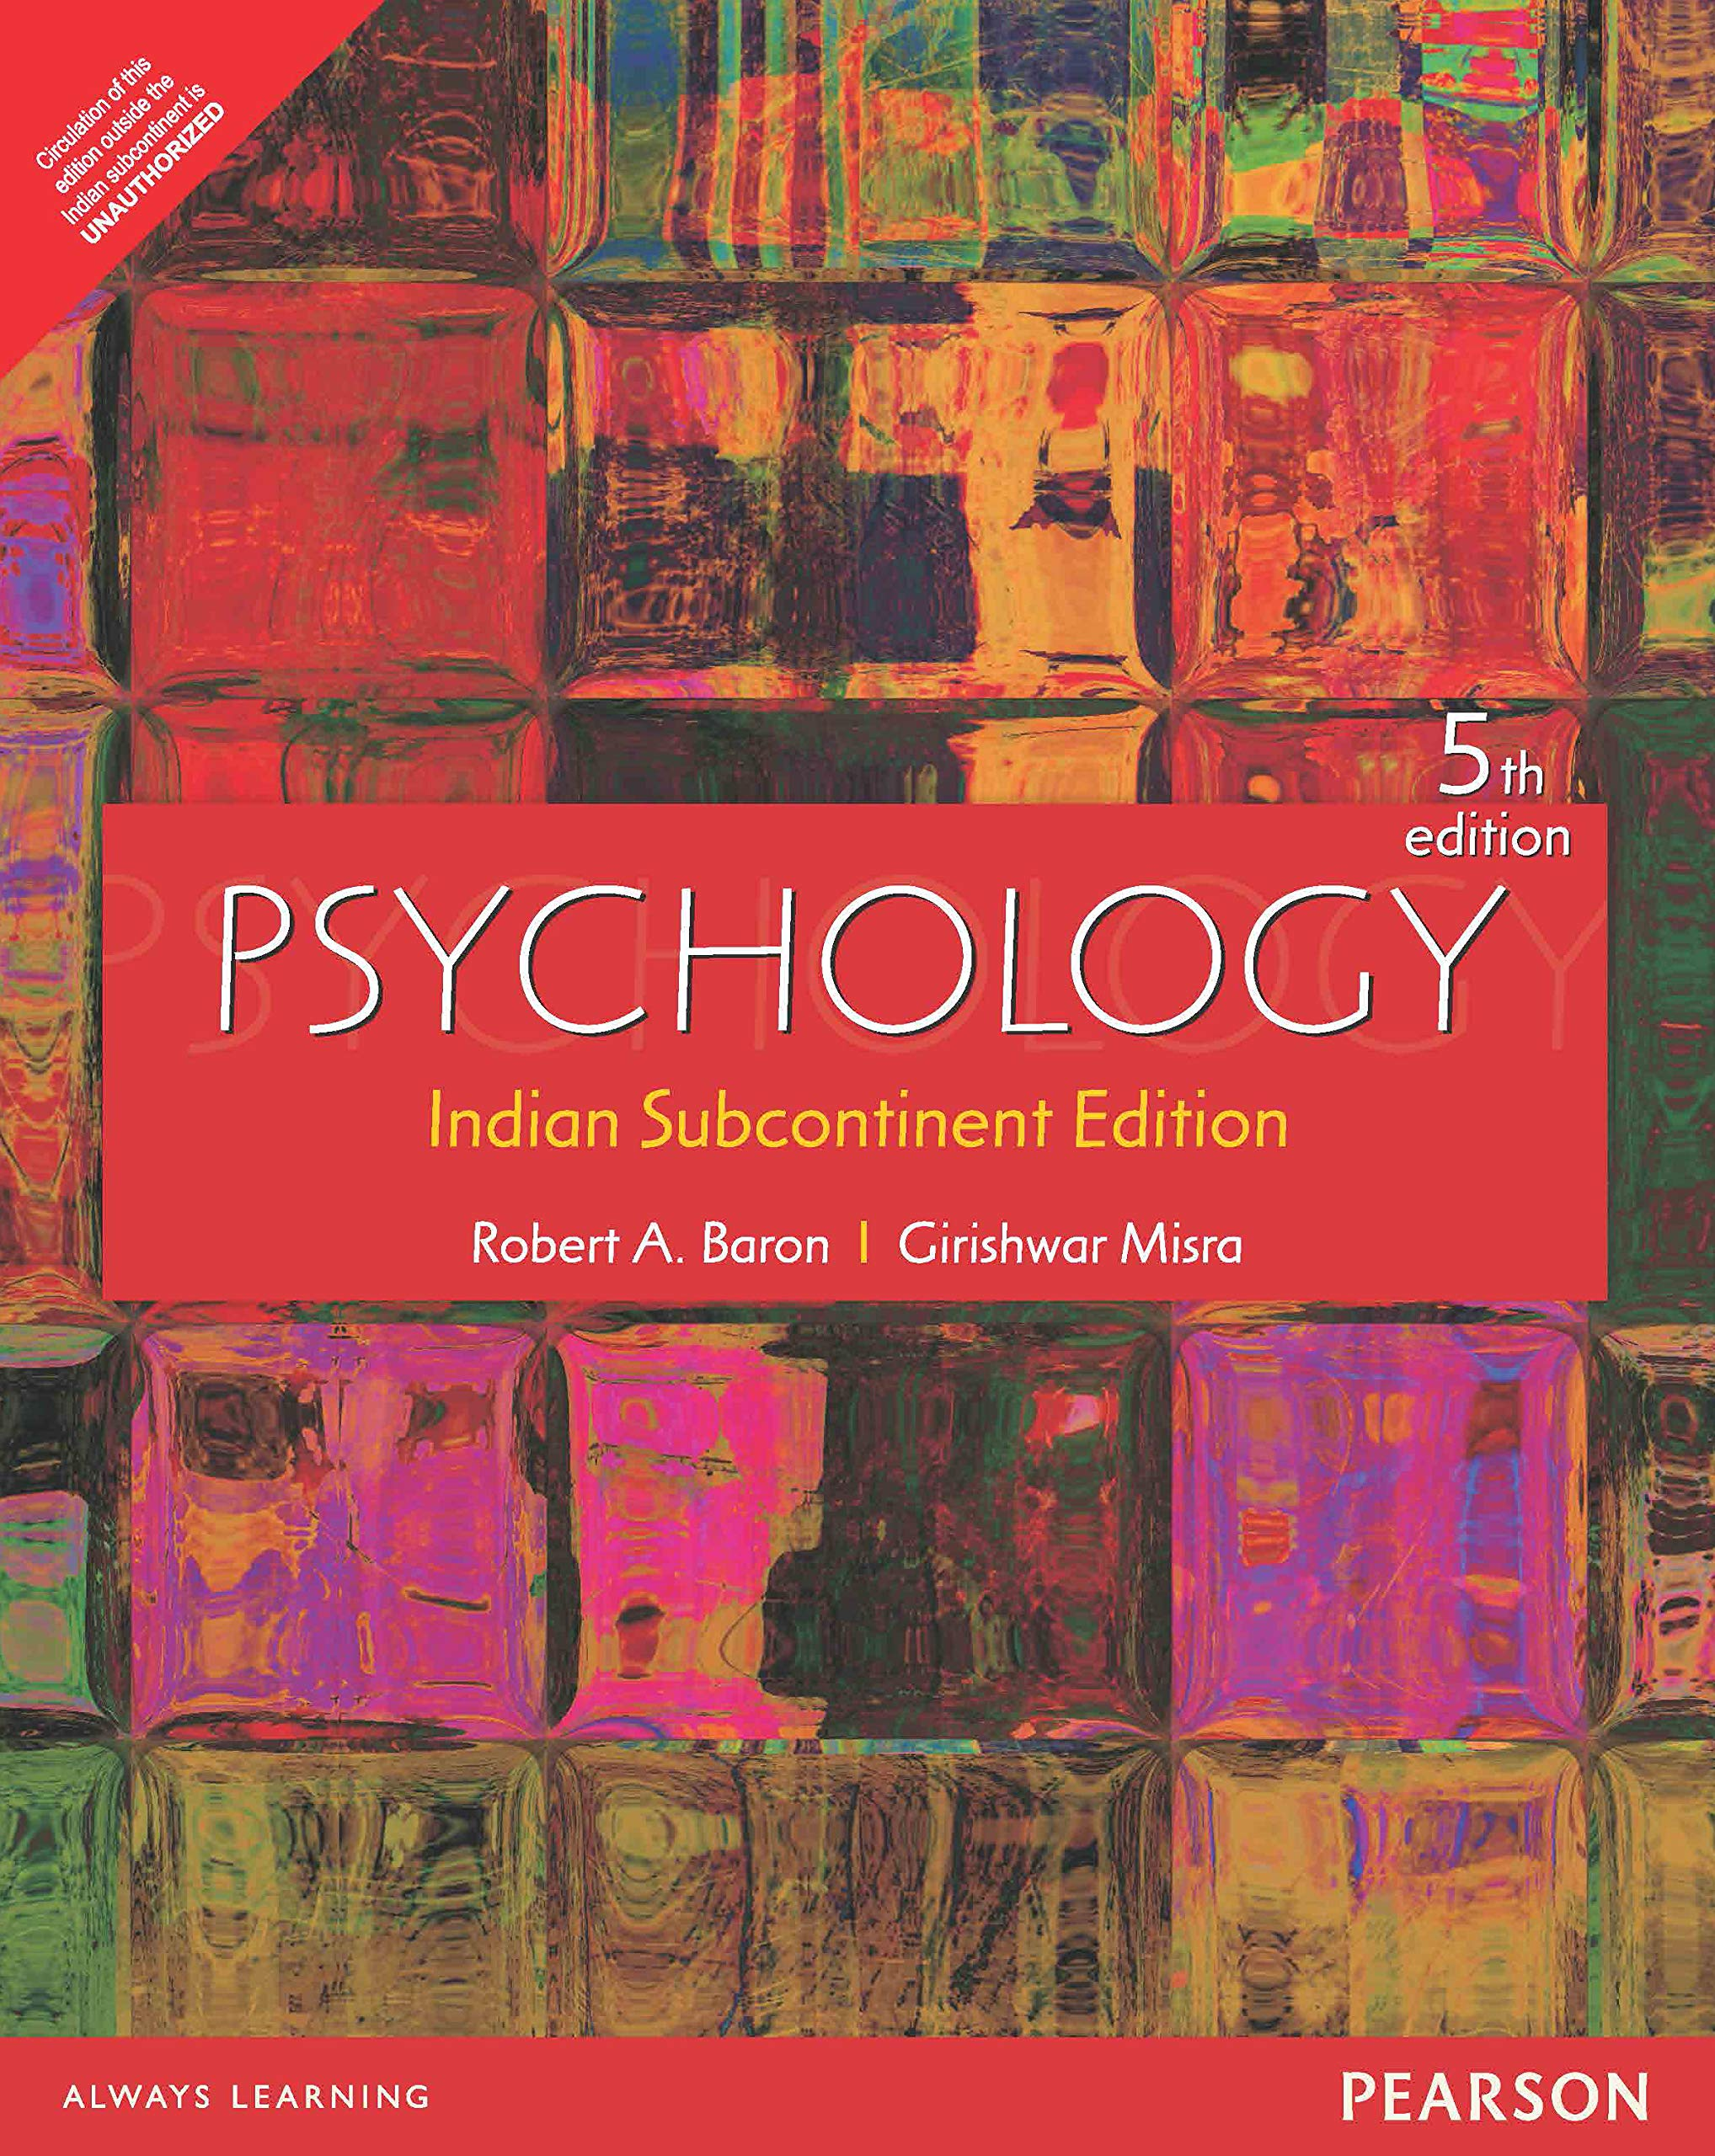 Psychology 5th Edition by Robert a Baron and Girishwar Misra